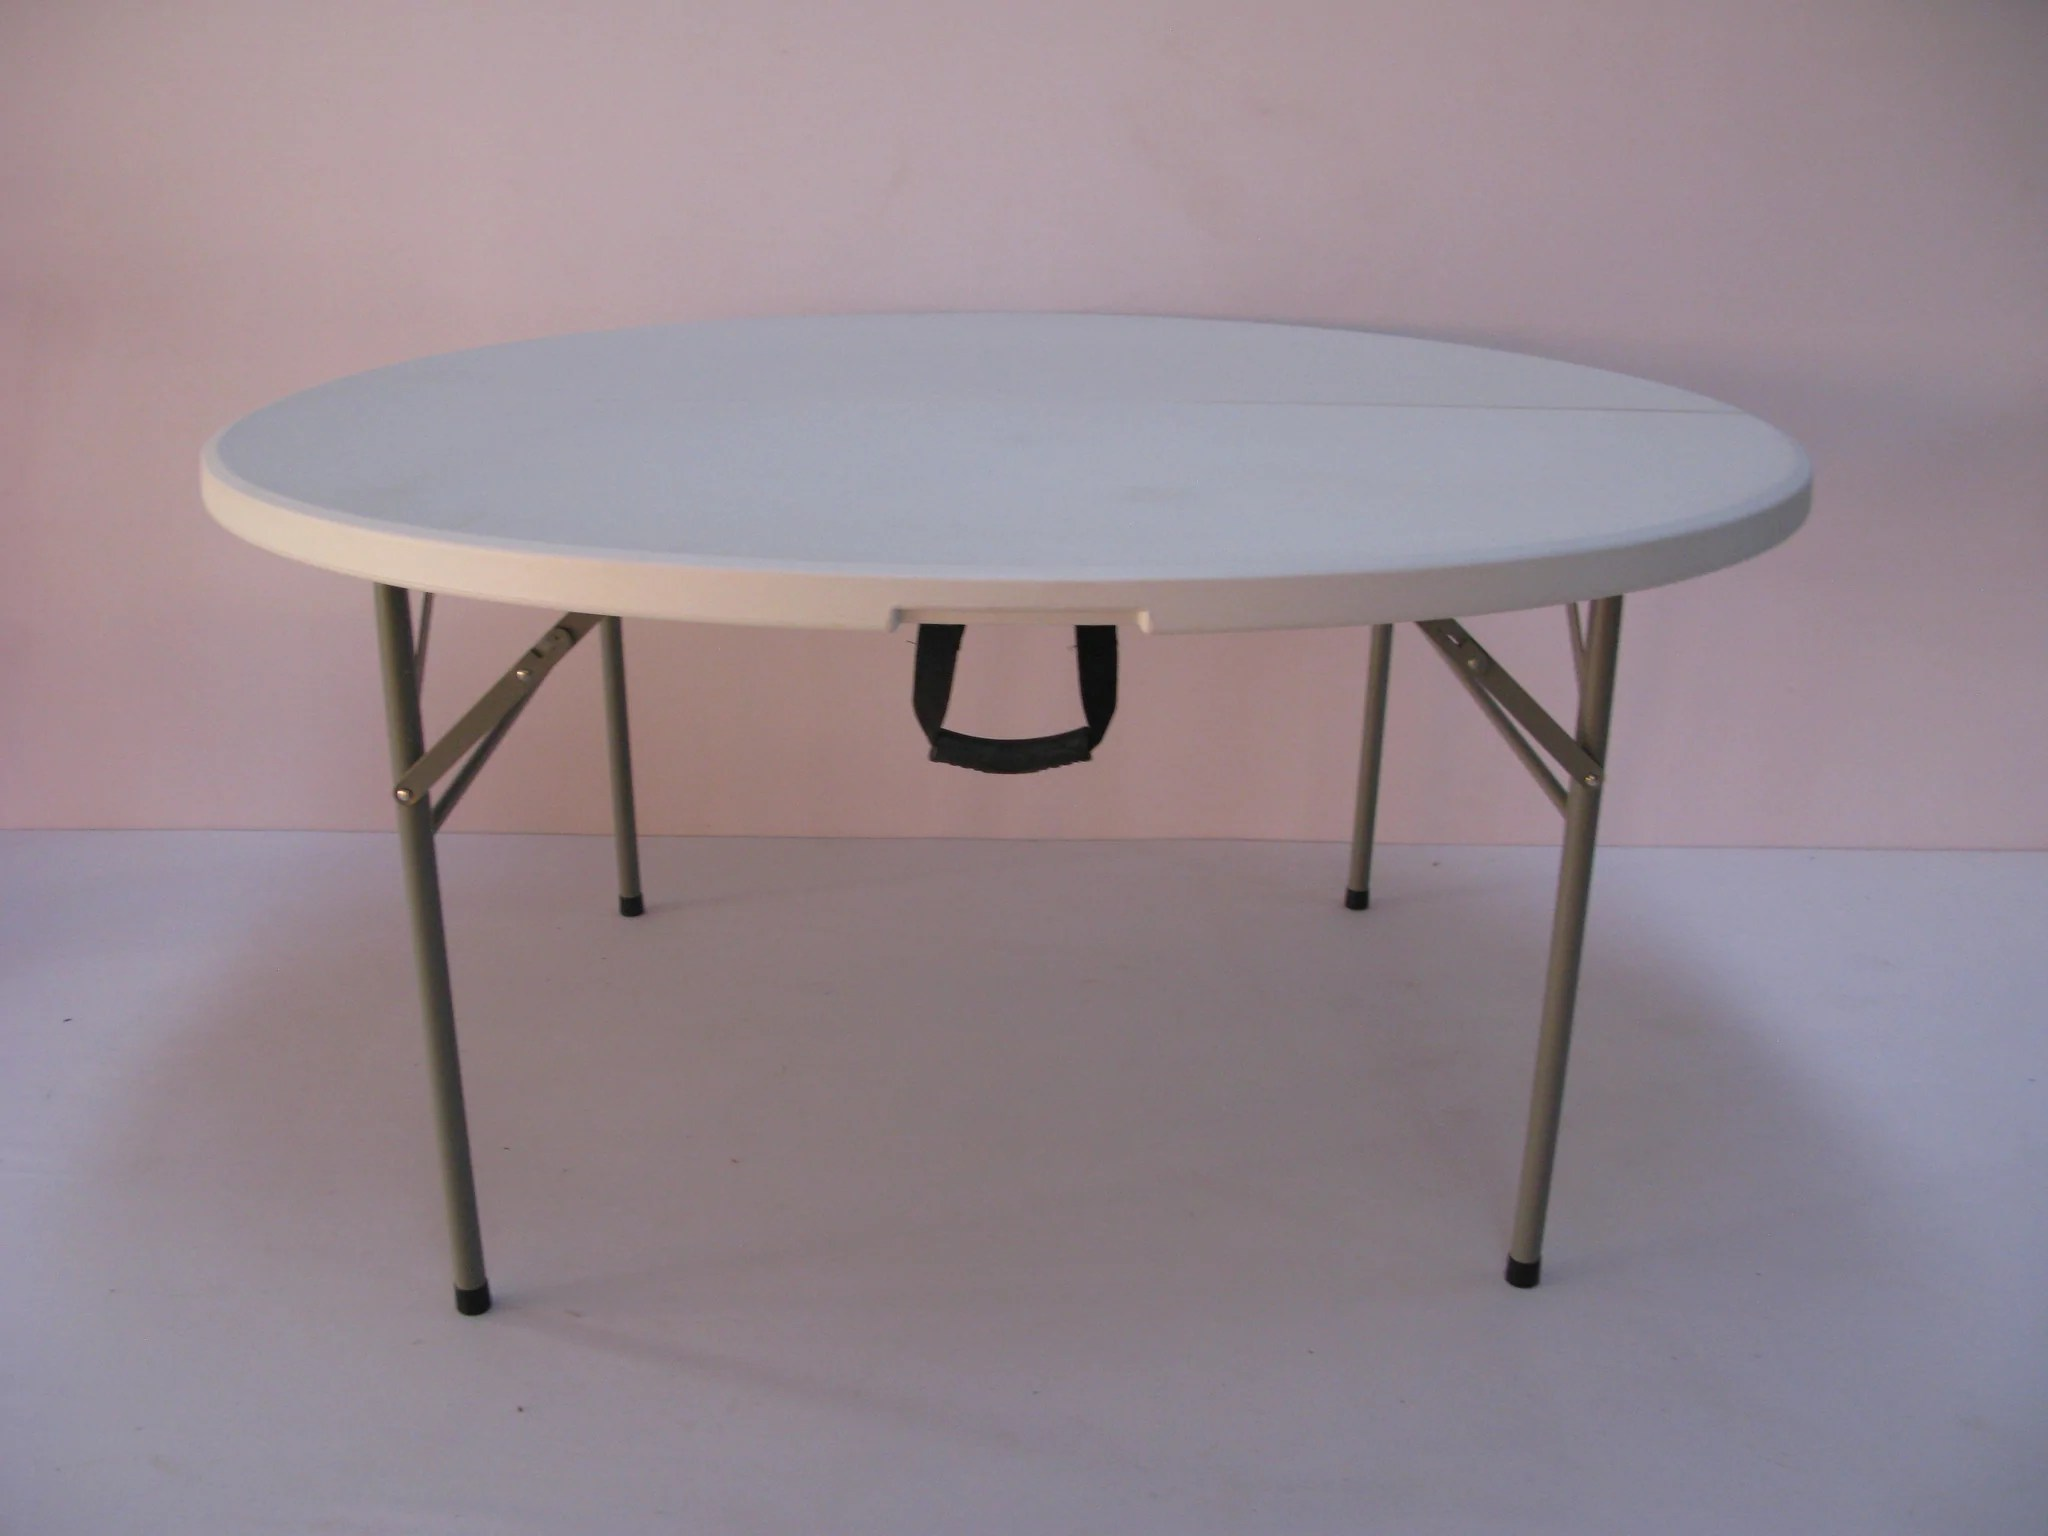 Round Table Seats 10 Rou003 Fold In Half Round Plastic Tables 1800mm Seats